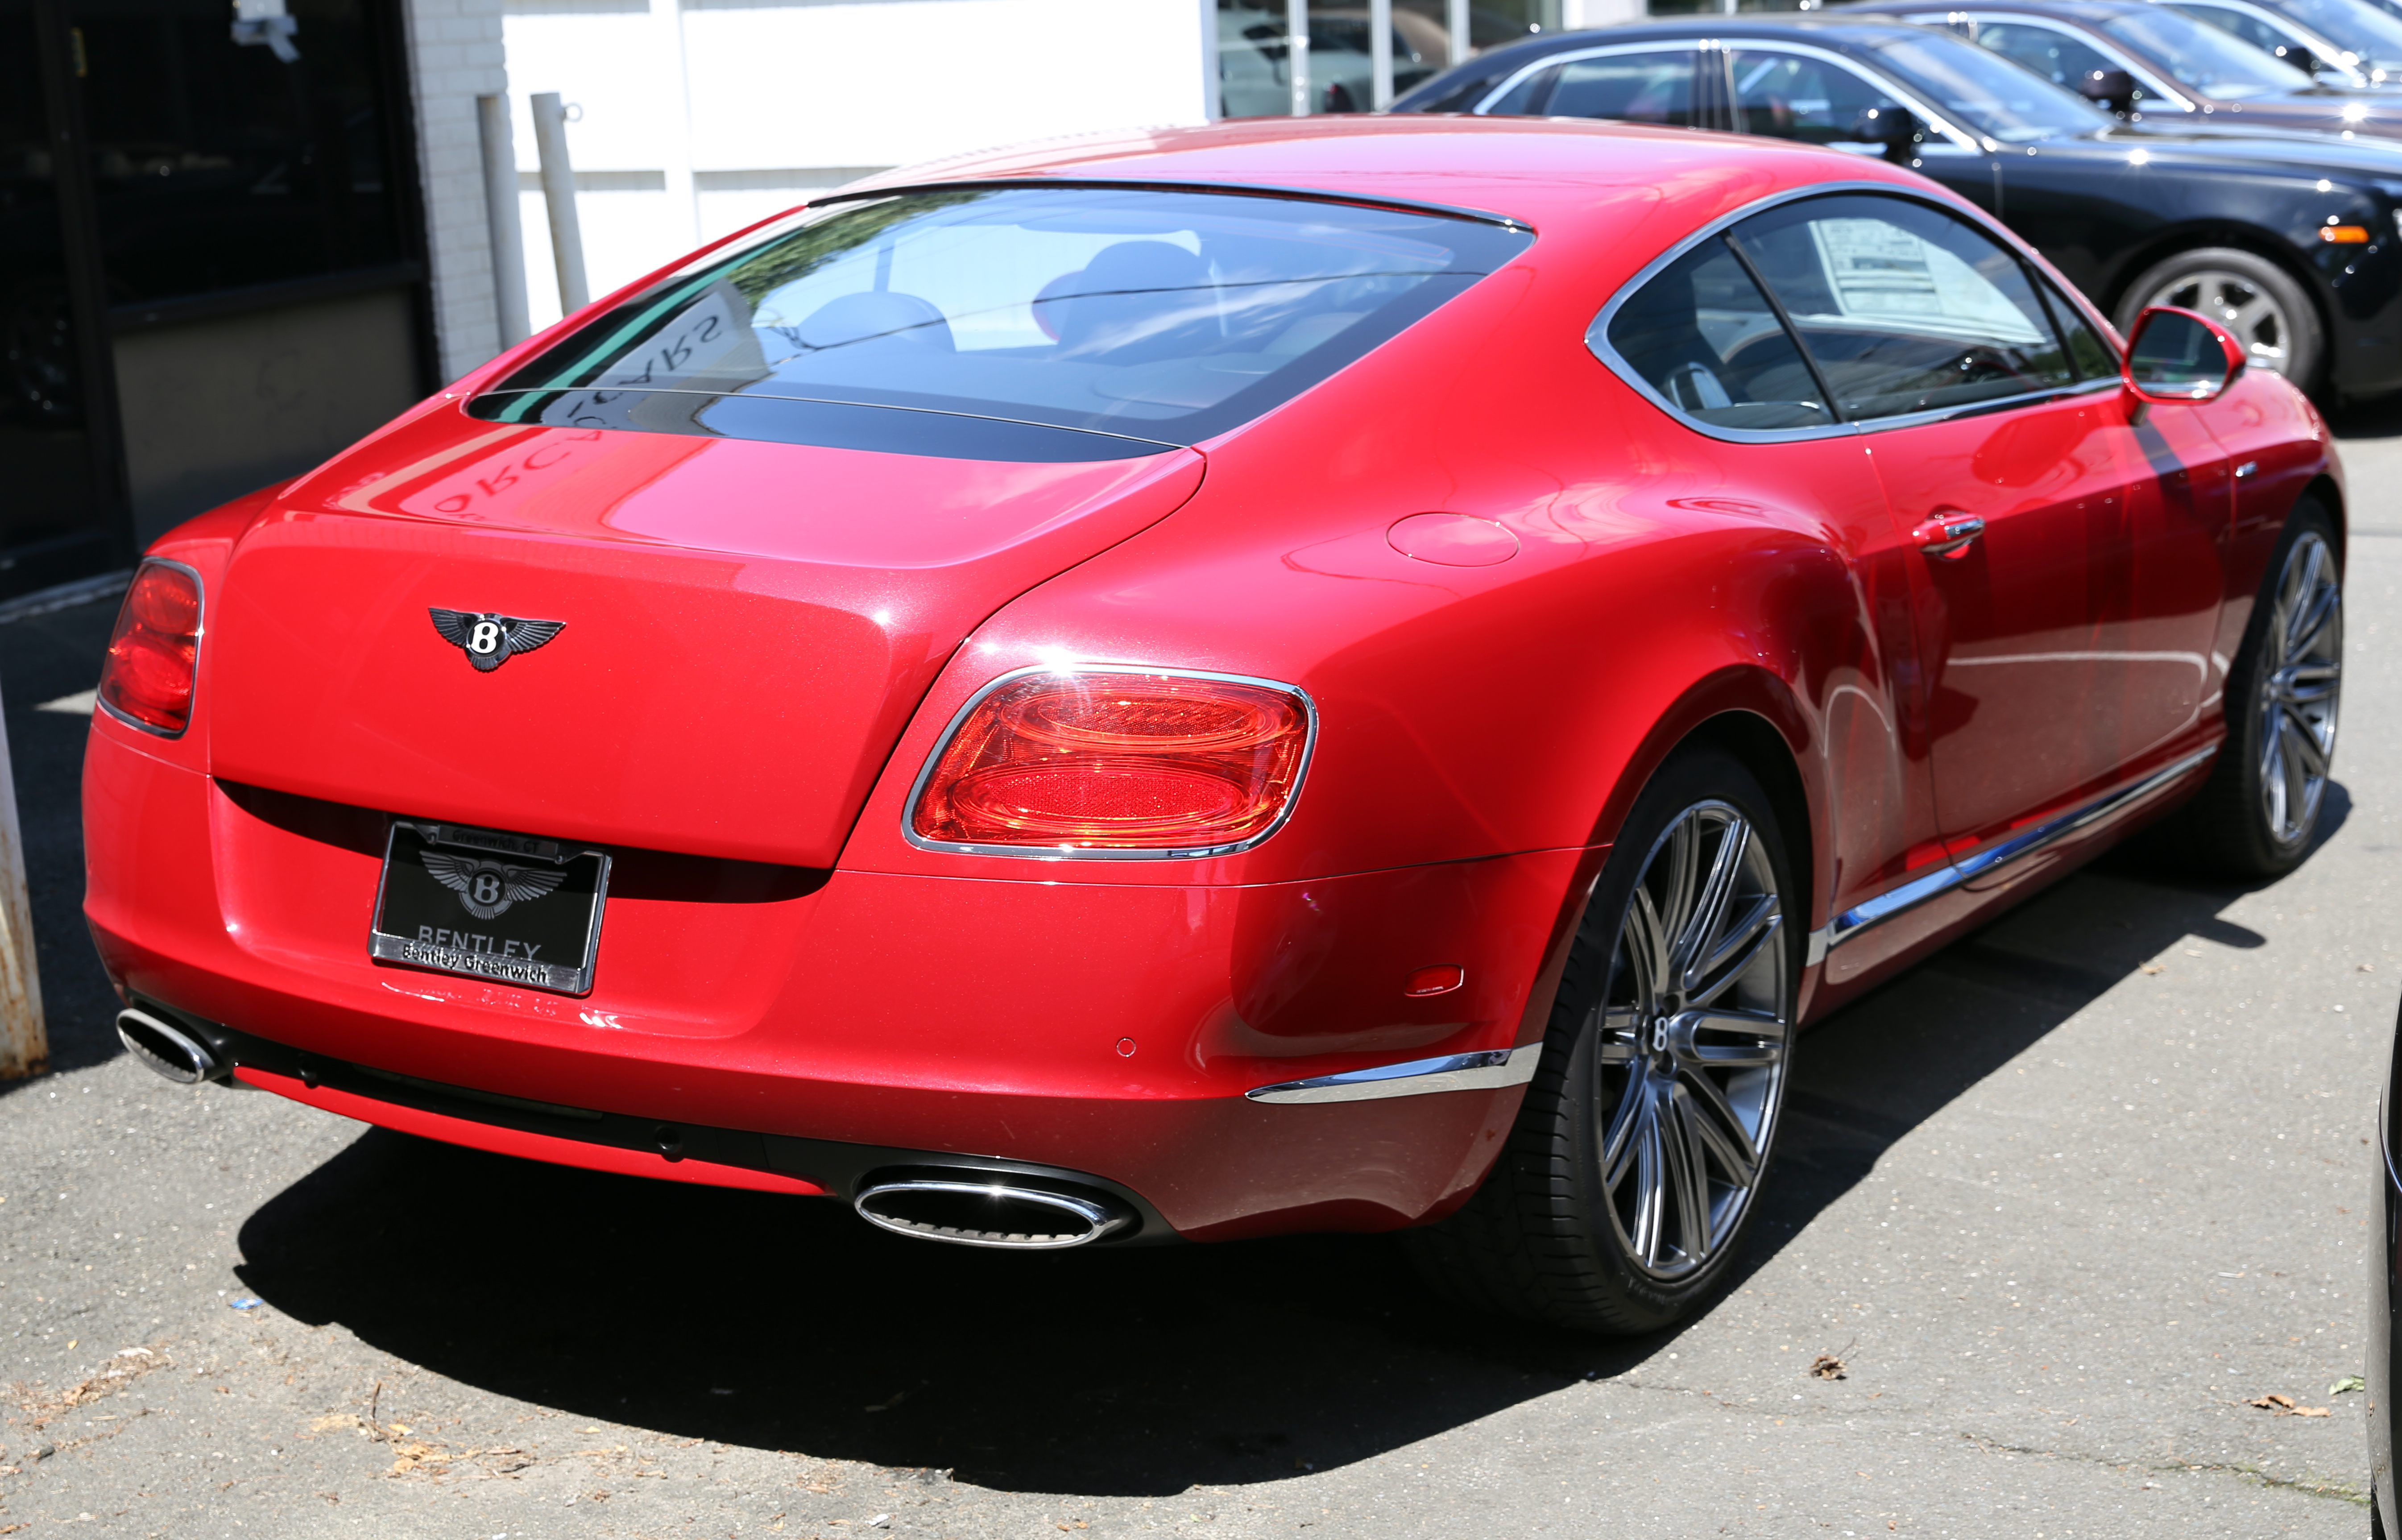 2009 bentley continental gt speed information and photos bentley continental gt speed 10 vanachro Image collections